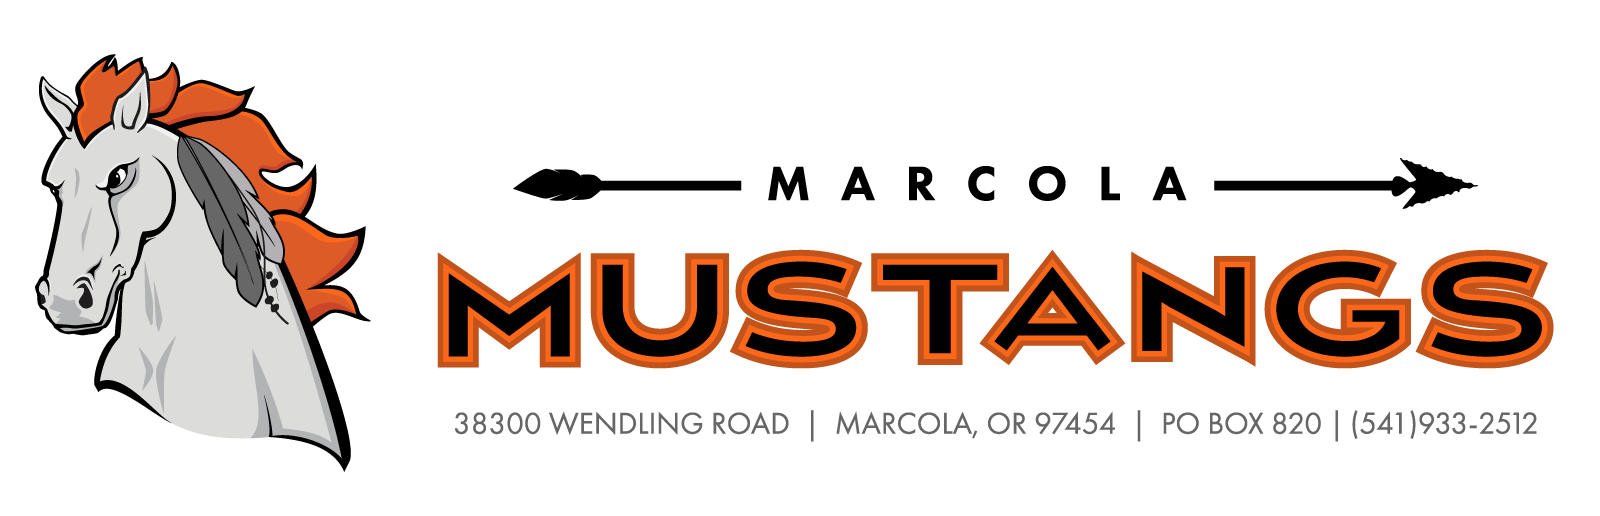 Marcola Mustangs Header